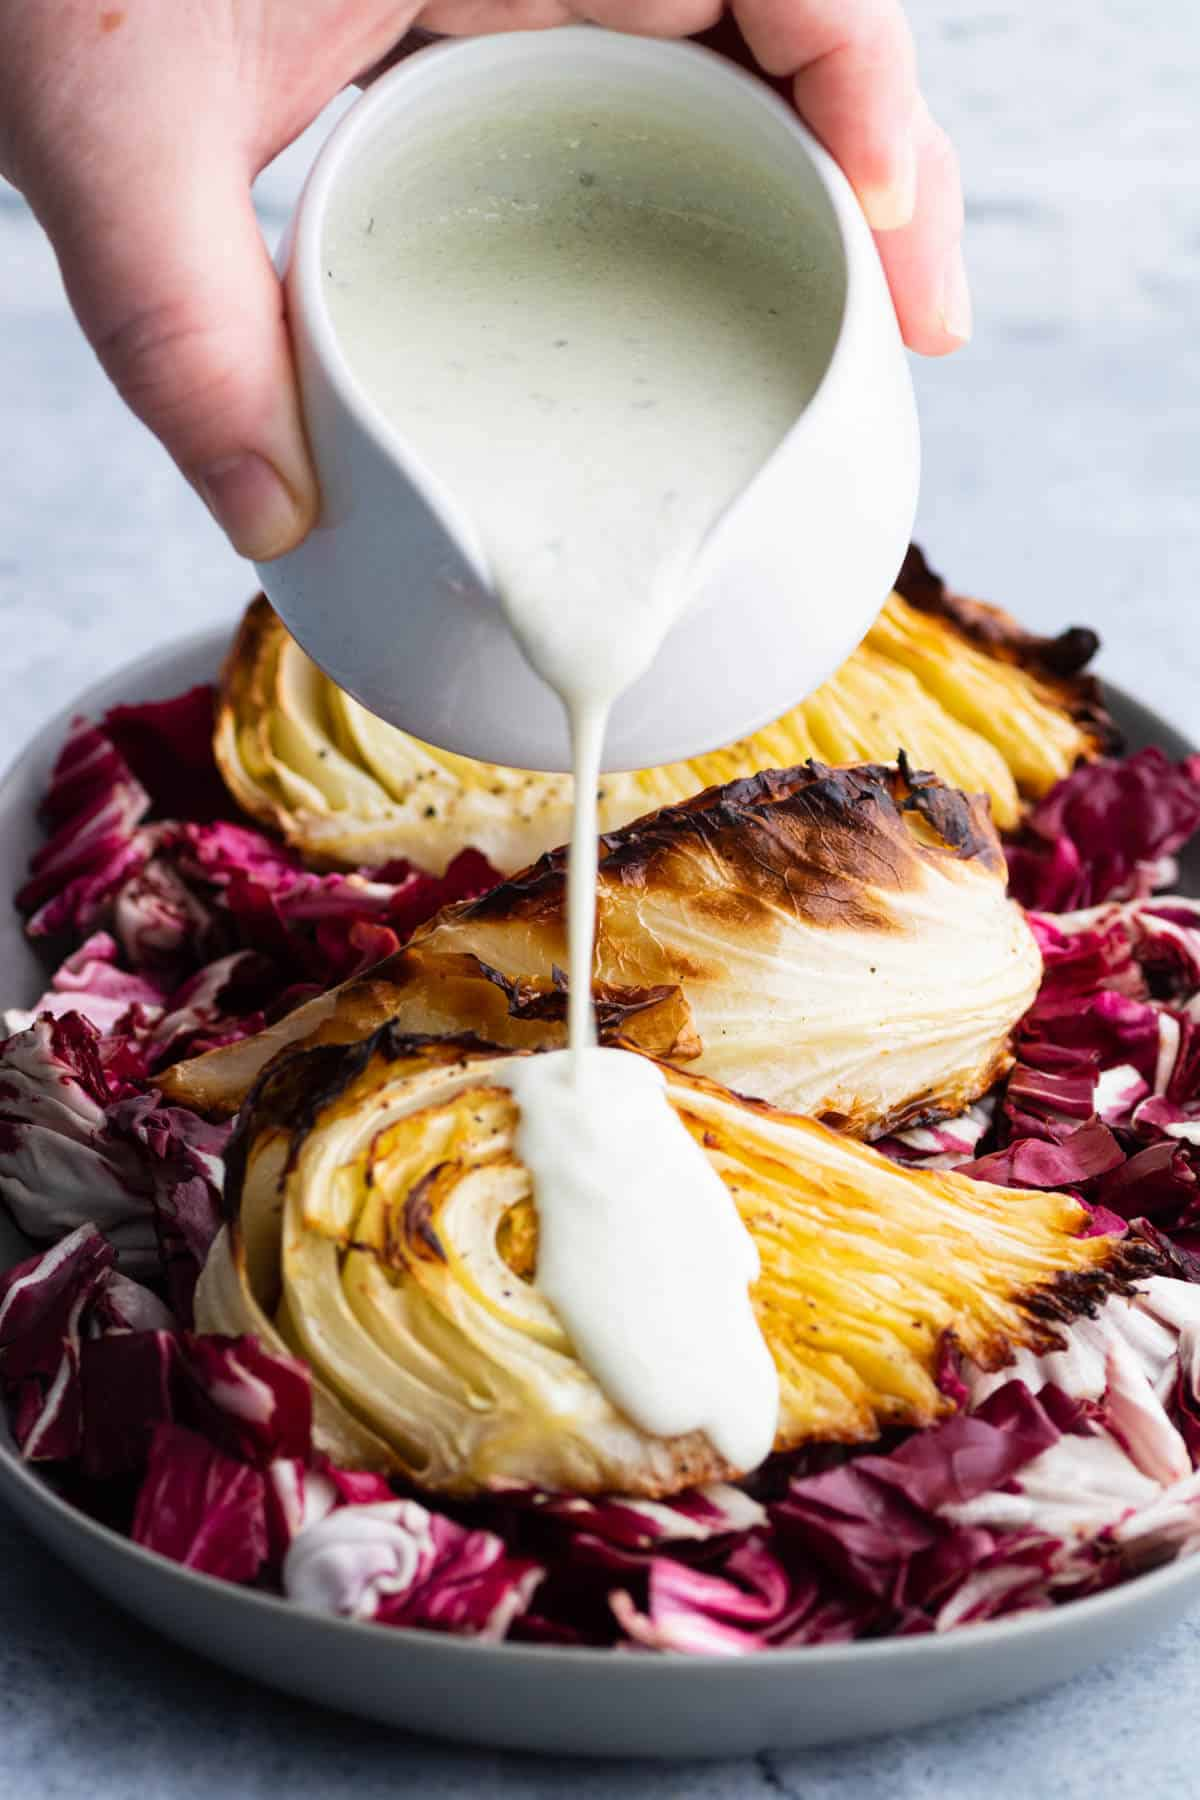 A creamy sauce being poured over roasted cabbage wedges.